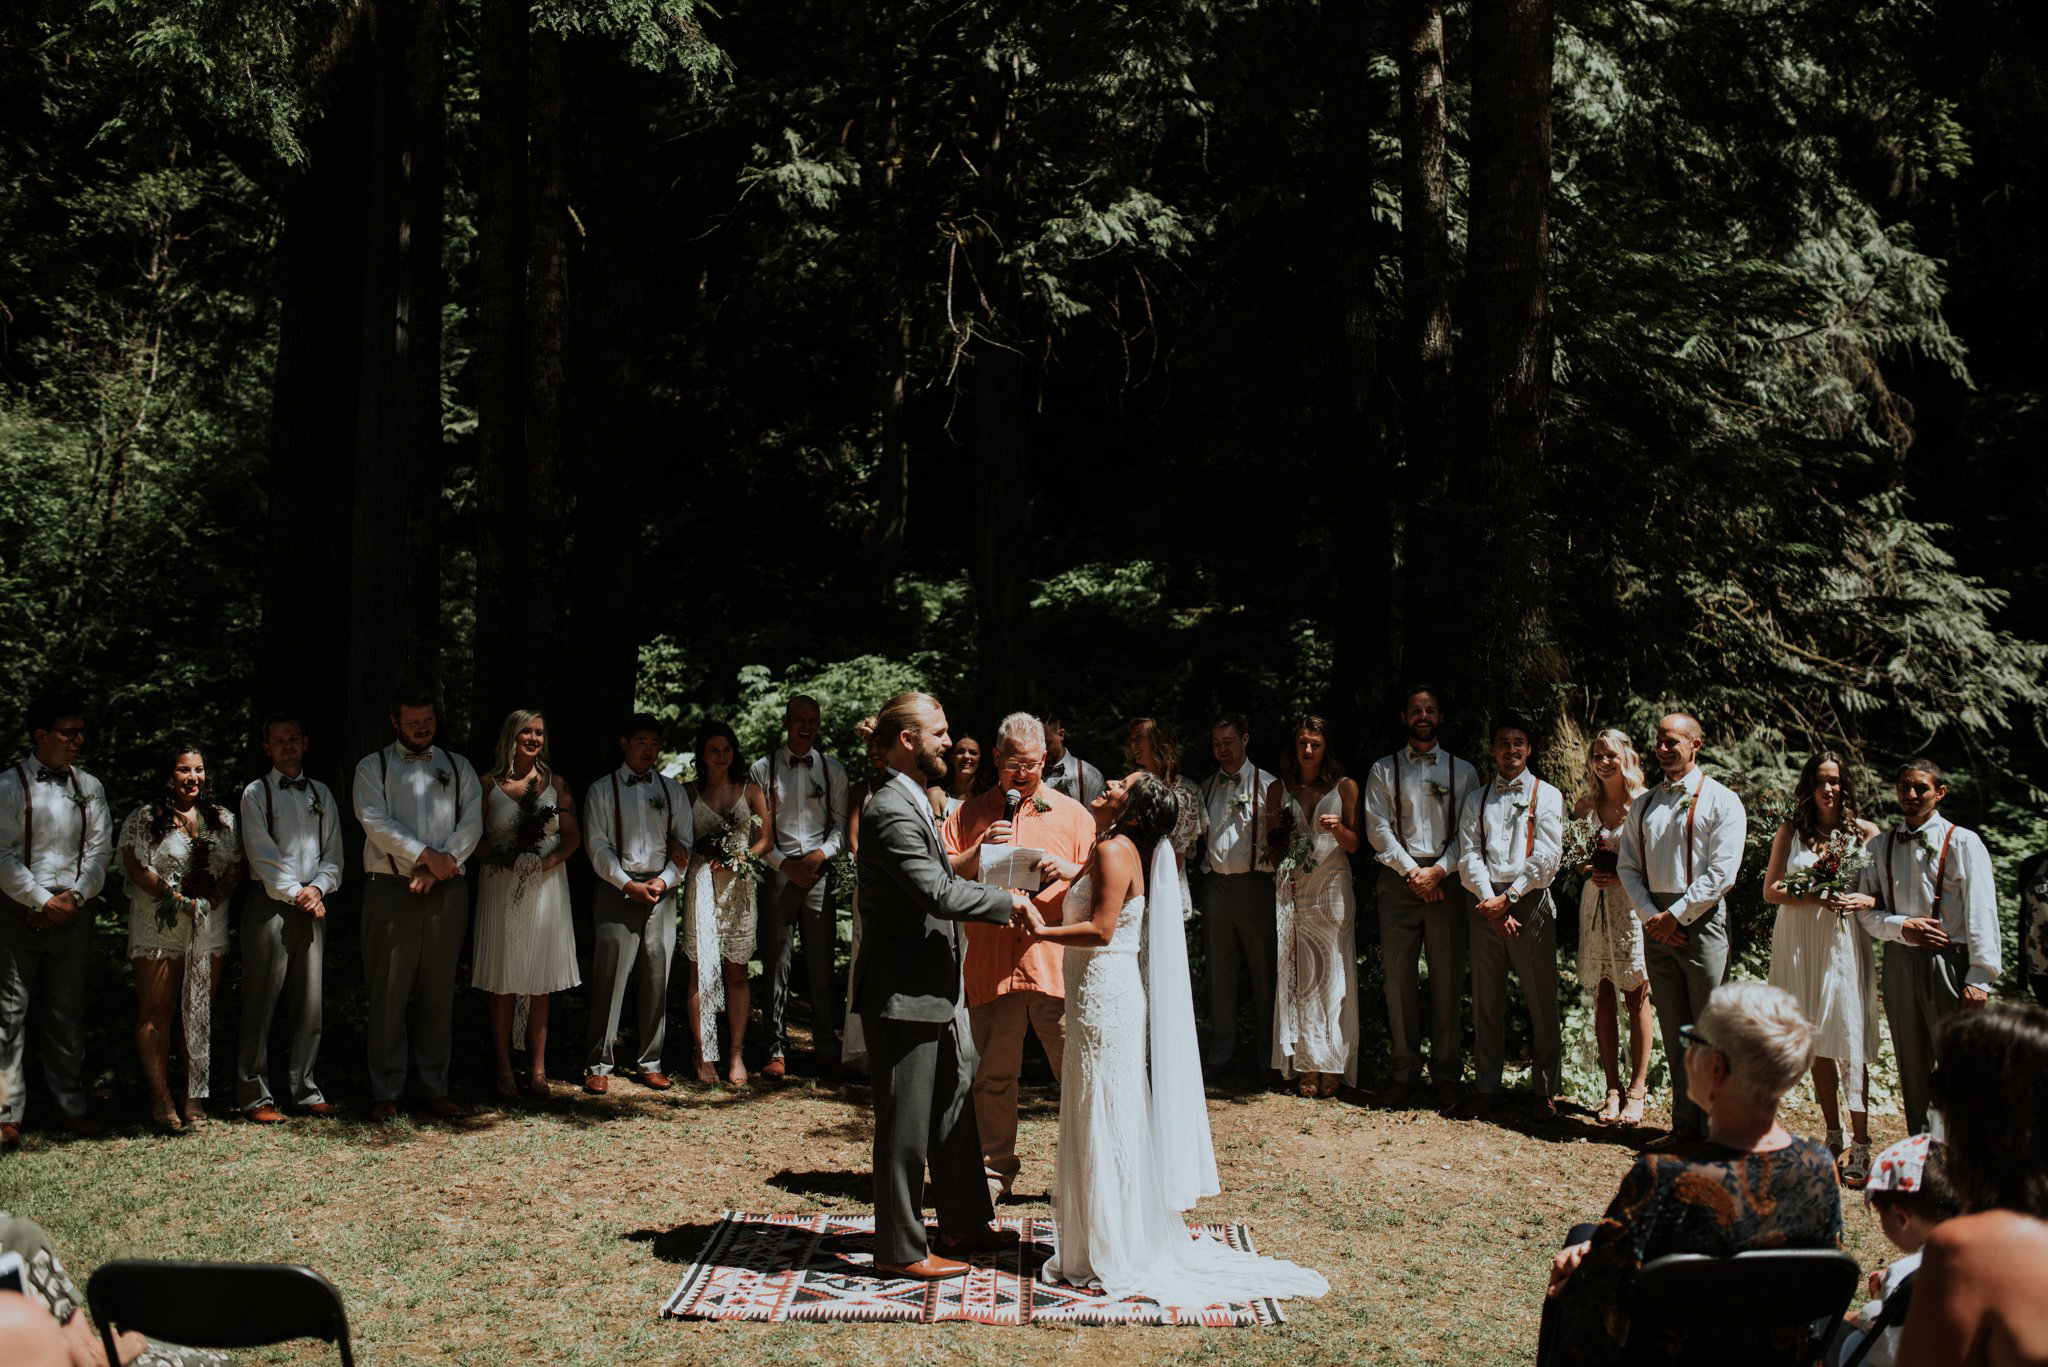 intimate-boho-campfire-wedding-shangri-la-on-the-green-seattle-wedding-photographer-caitlyn-nikula-photography-46.jpg